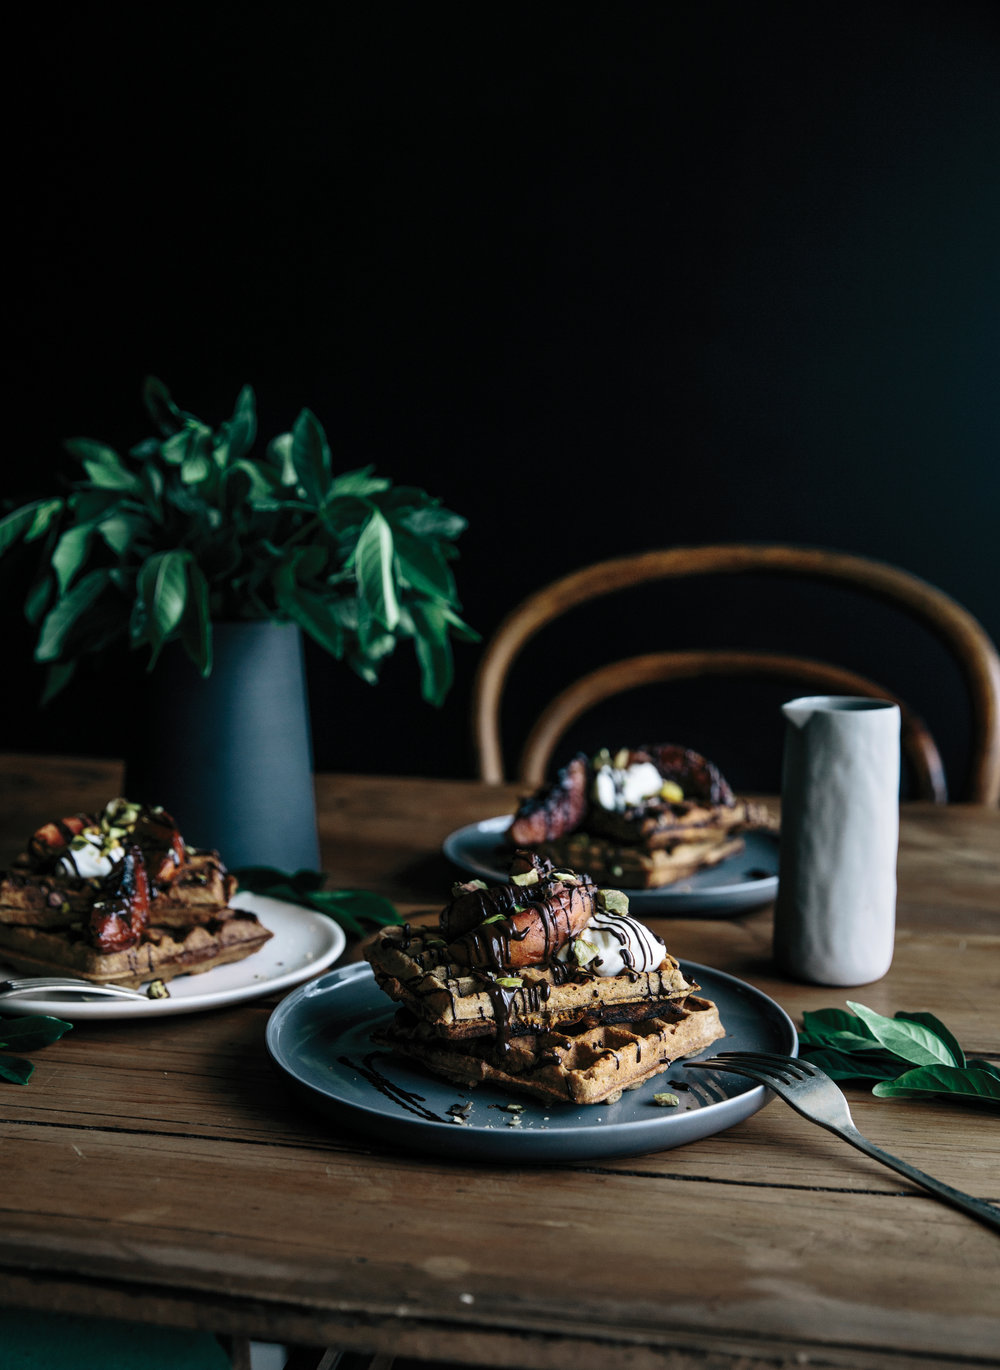 02-vanilla-buckwheat-waffles-with-caramalised-peaches-dark-chocolate-and-pistachios-title.jpg